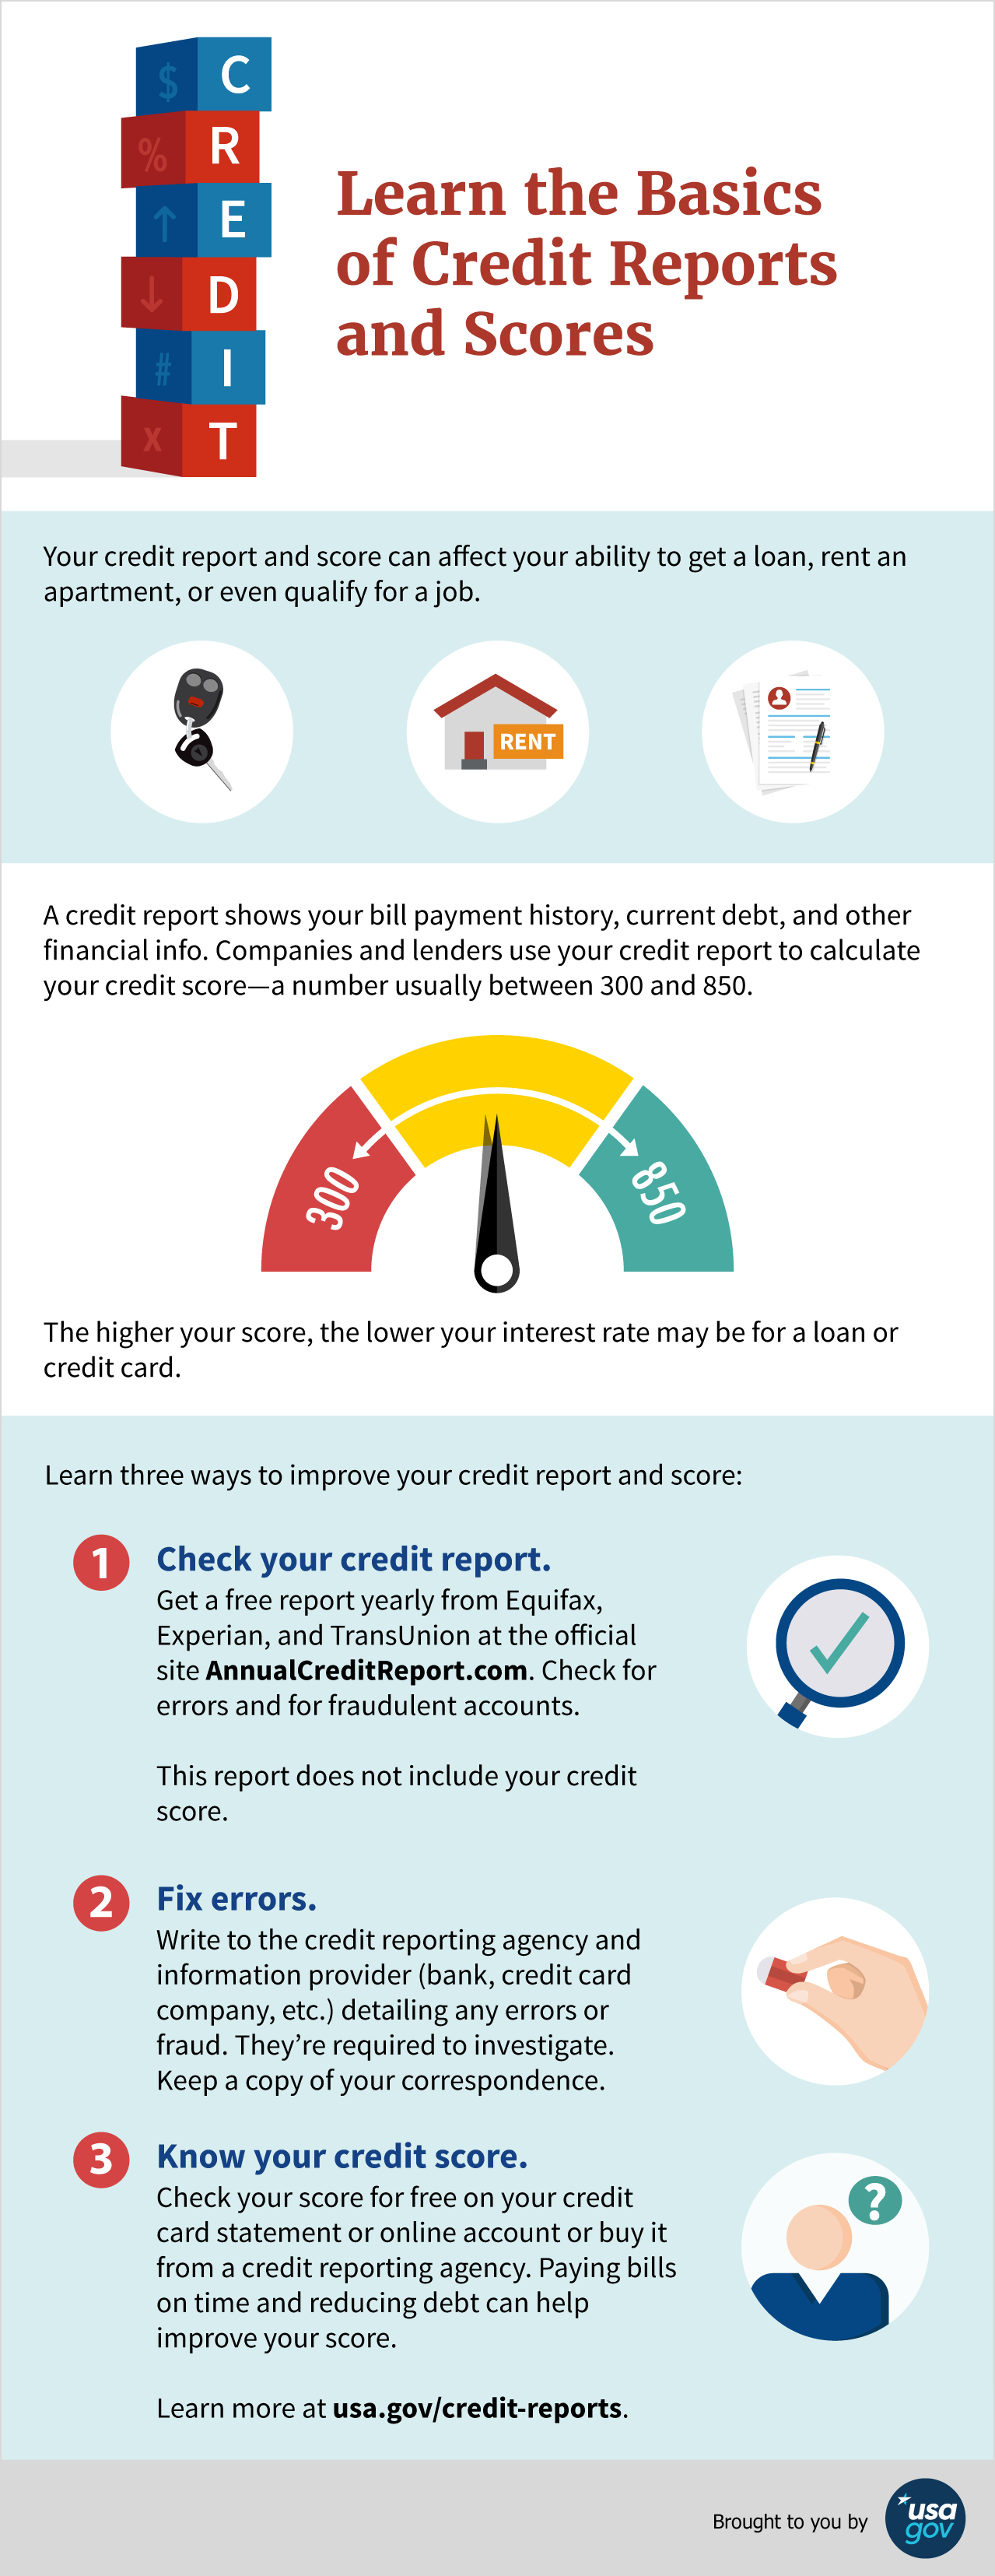 3 in one credit scores and reports for free